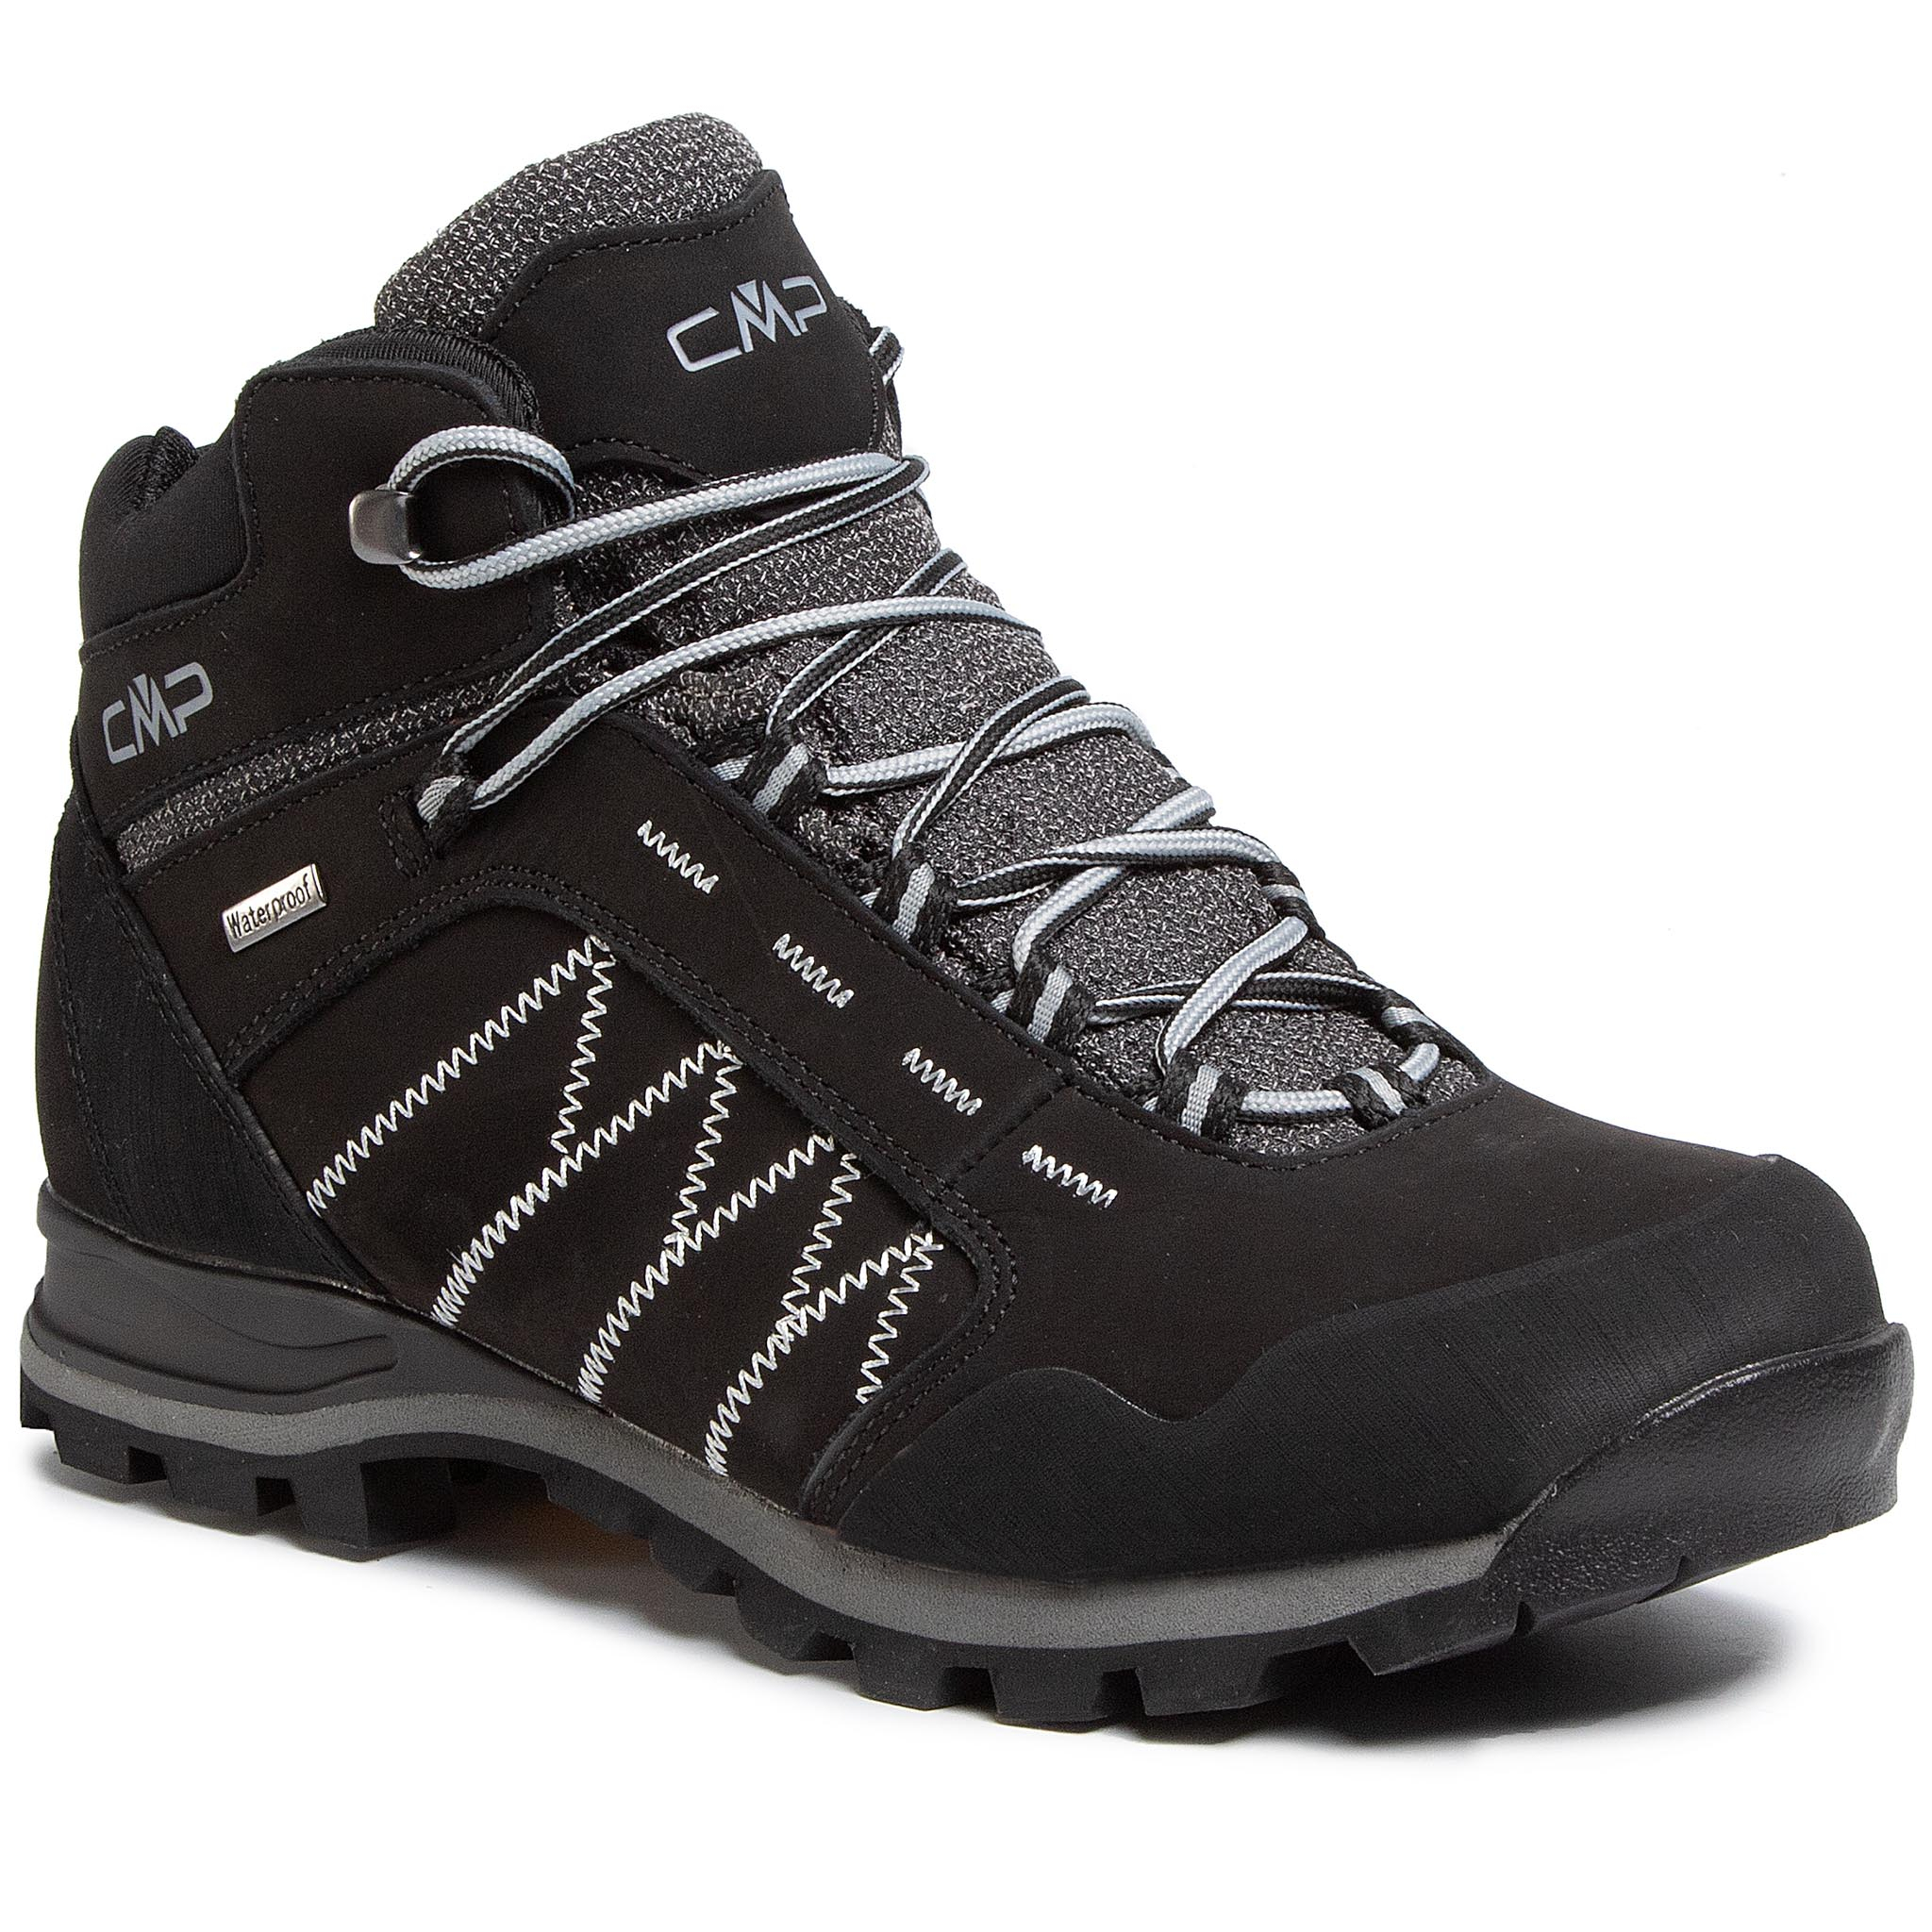 Trekkings Cmp - Thiamat Mid Trekking Shoe Wp 30q9567 Nero U901 imagine epantofi.ro 2021